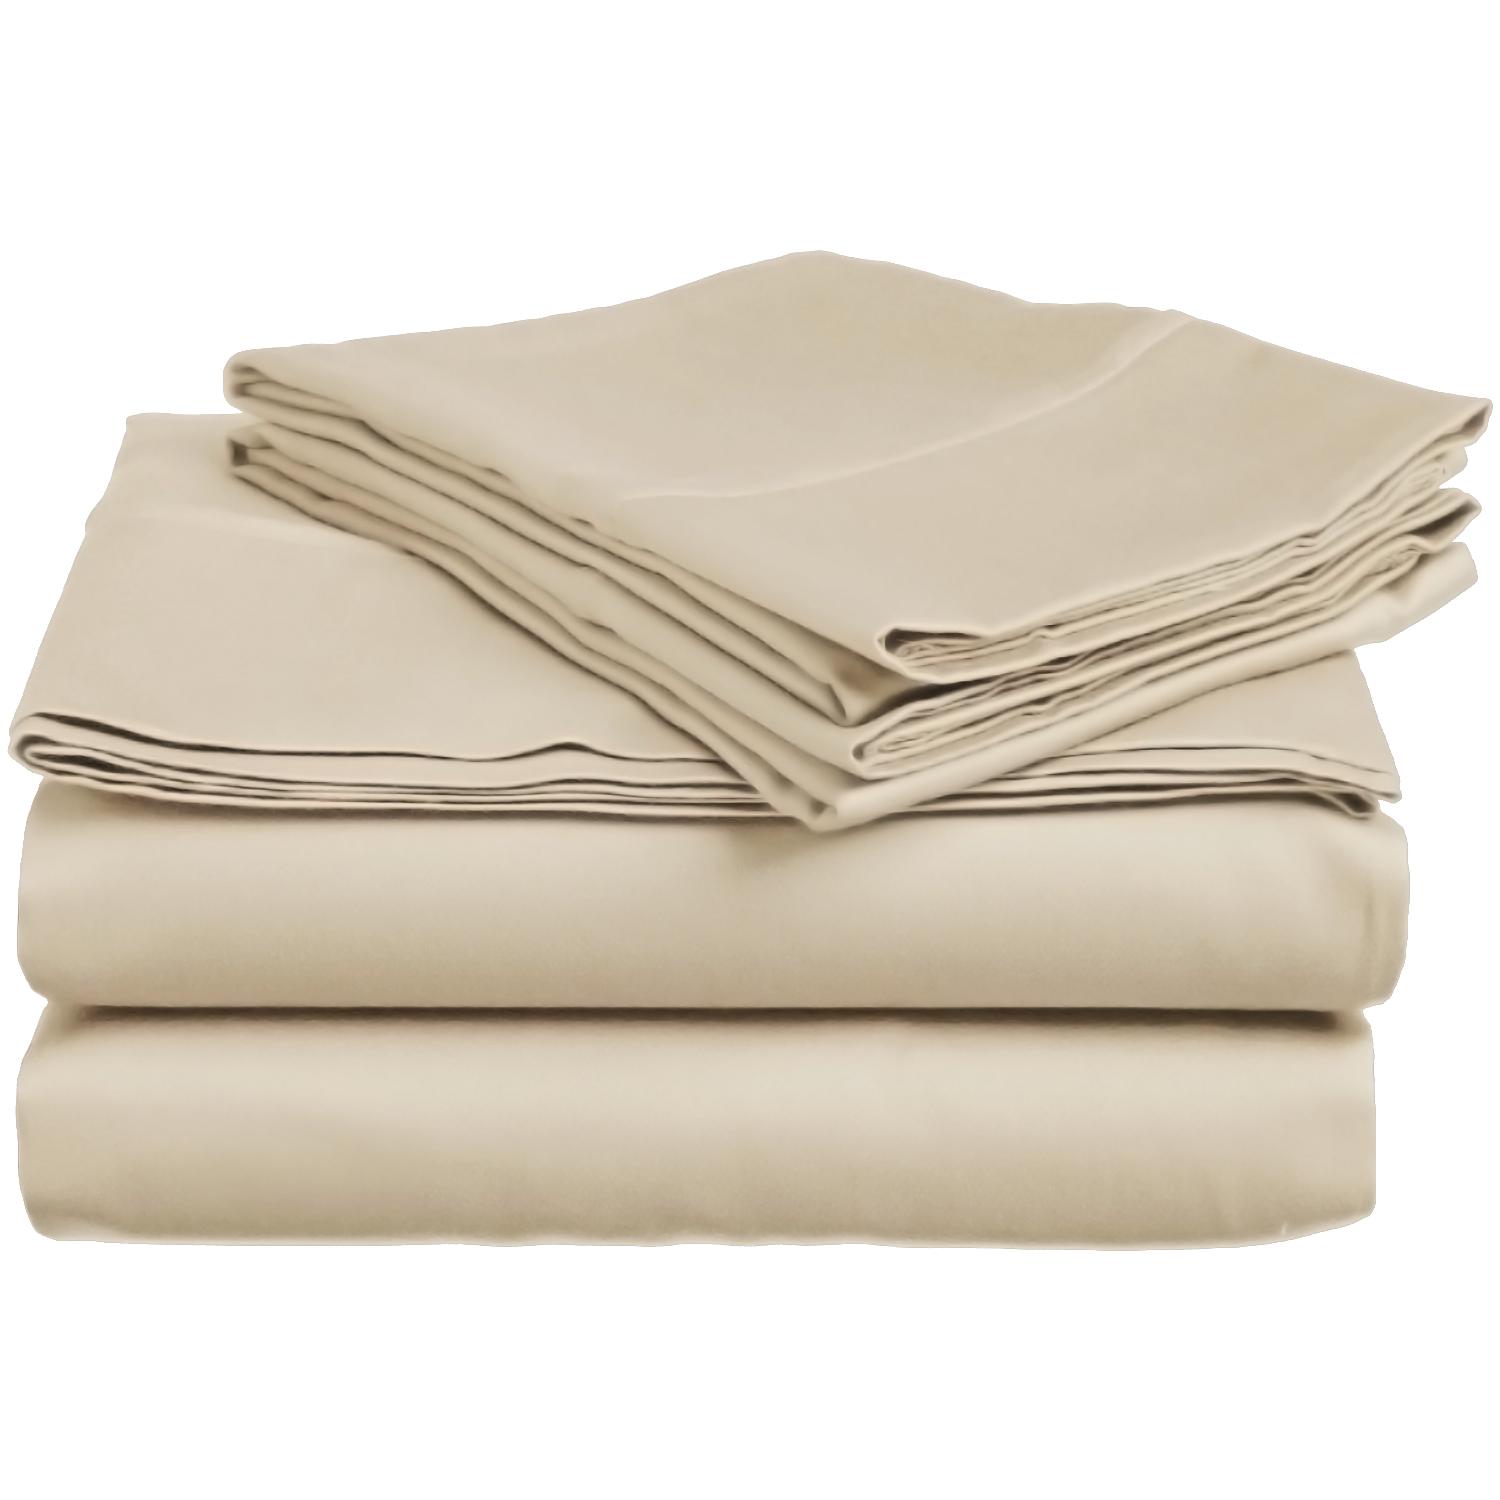 Sheet Set & Duvet Cover Set & Pillowcases, Combed Cotton, 300 TC, Solid